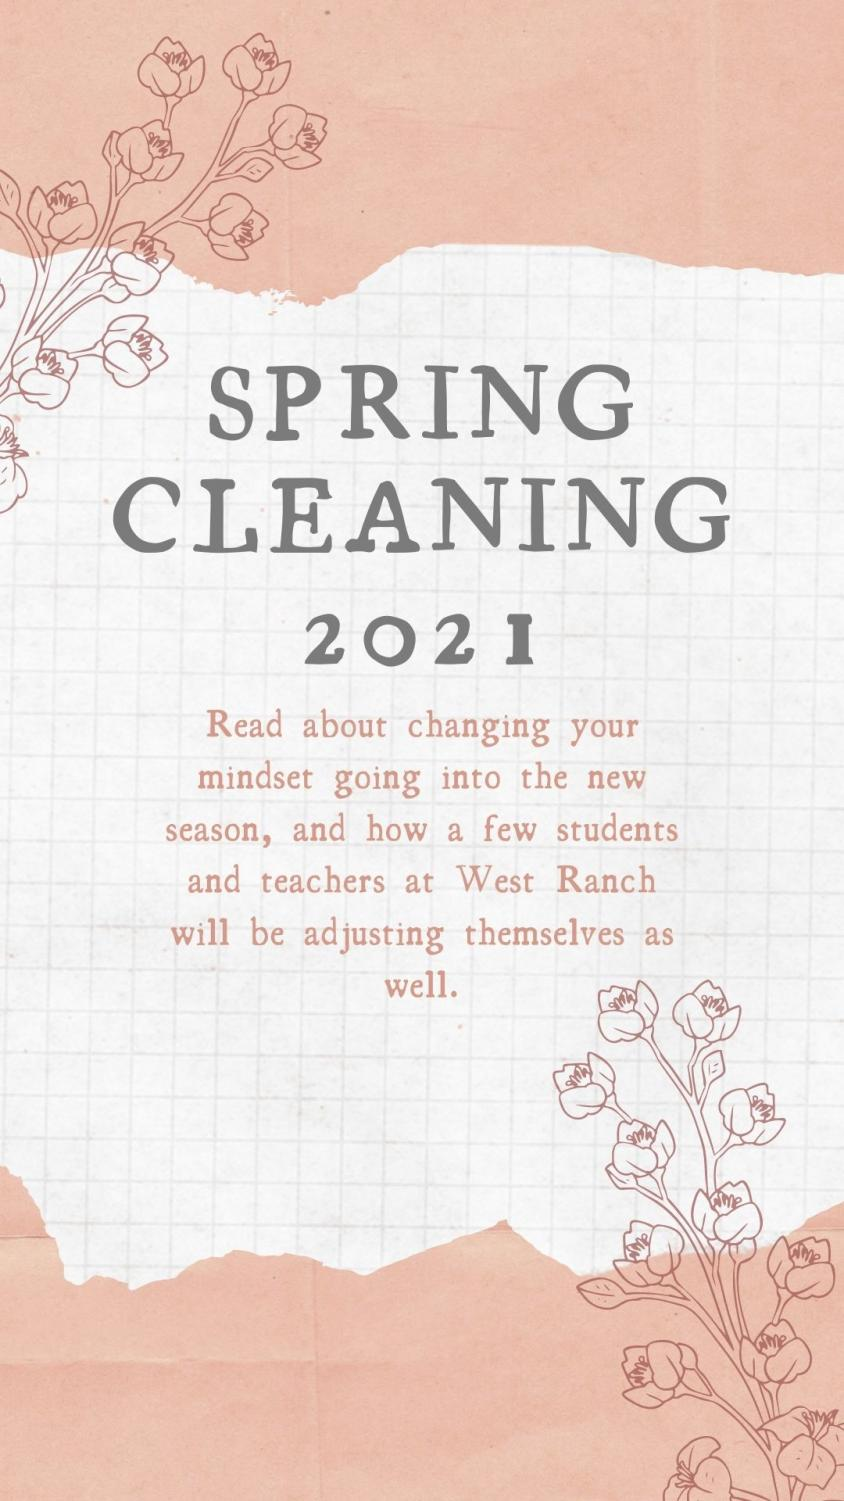 Spring Cleaning 2021: Attitudes & Mindsets